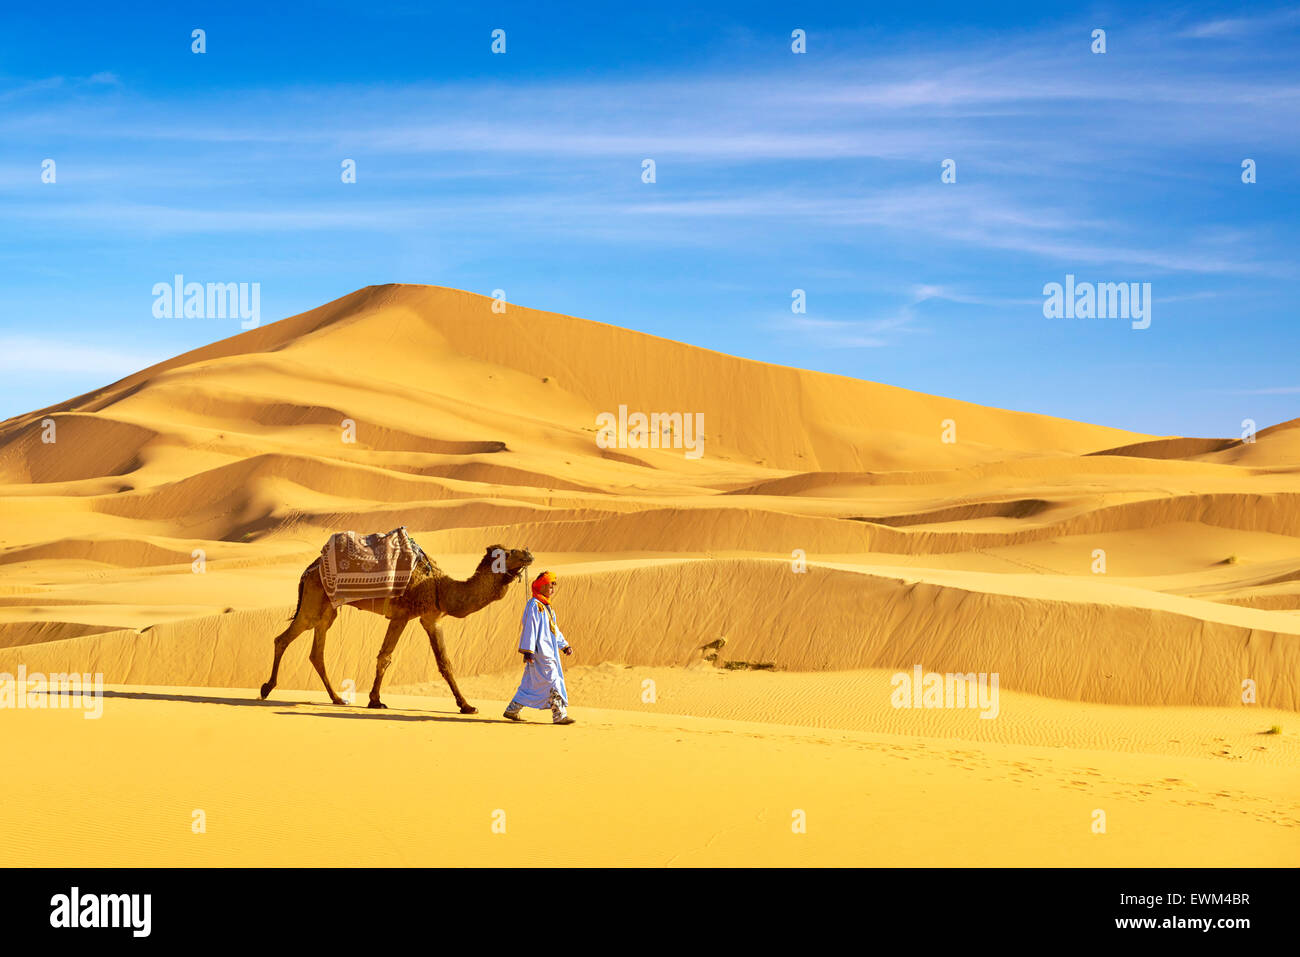 Berber with his camel on Sahara desert dune, Morocco - Stock Image